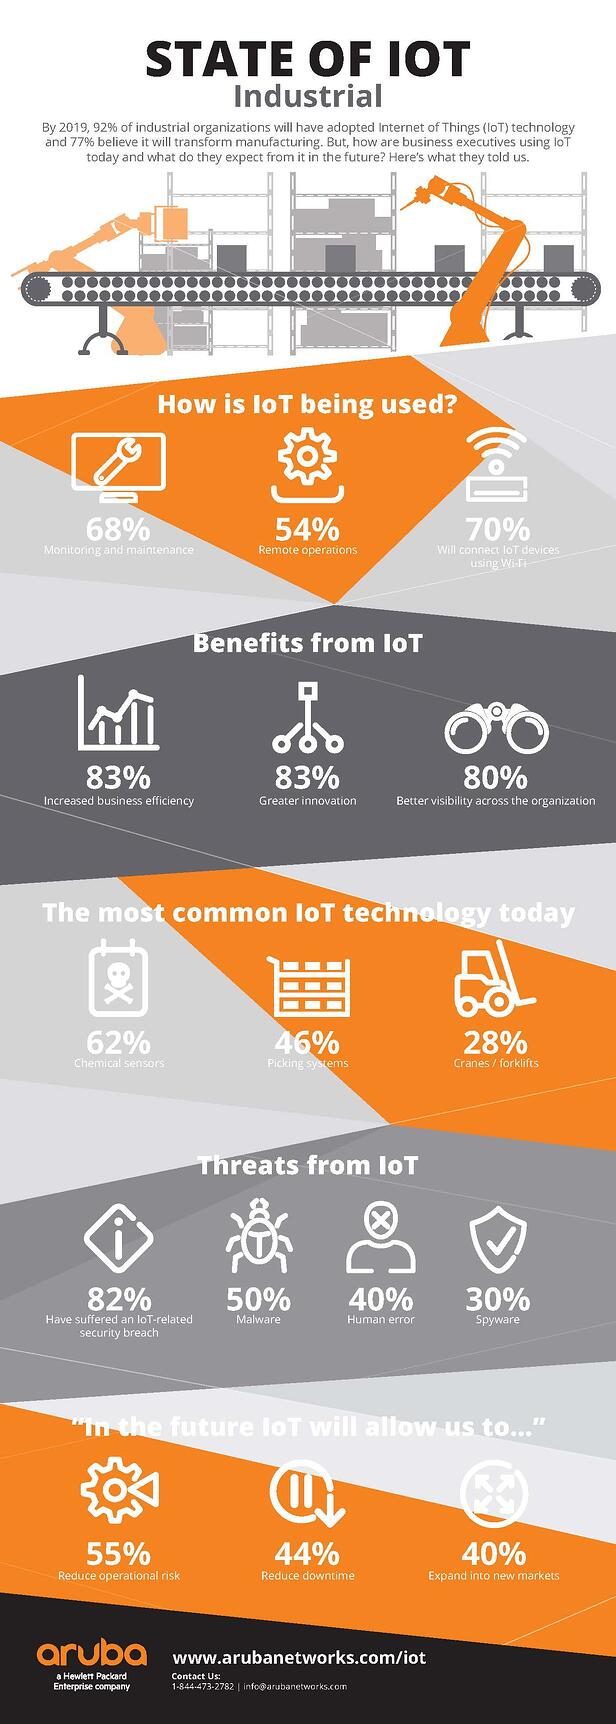 Industrial IoT Infographic from Aruba Networks.jpg